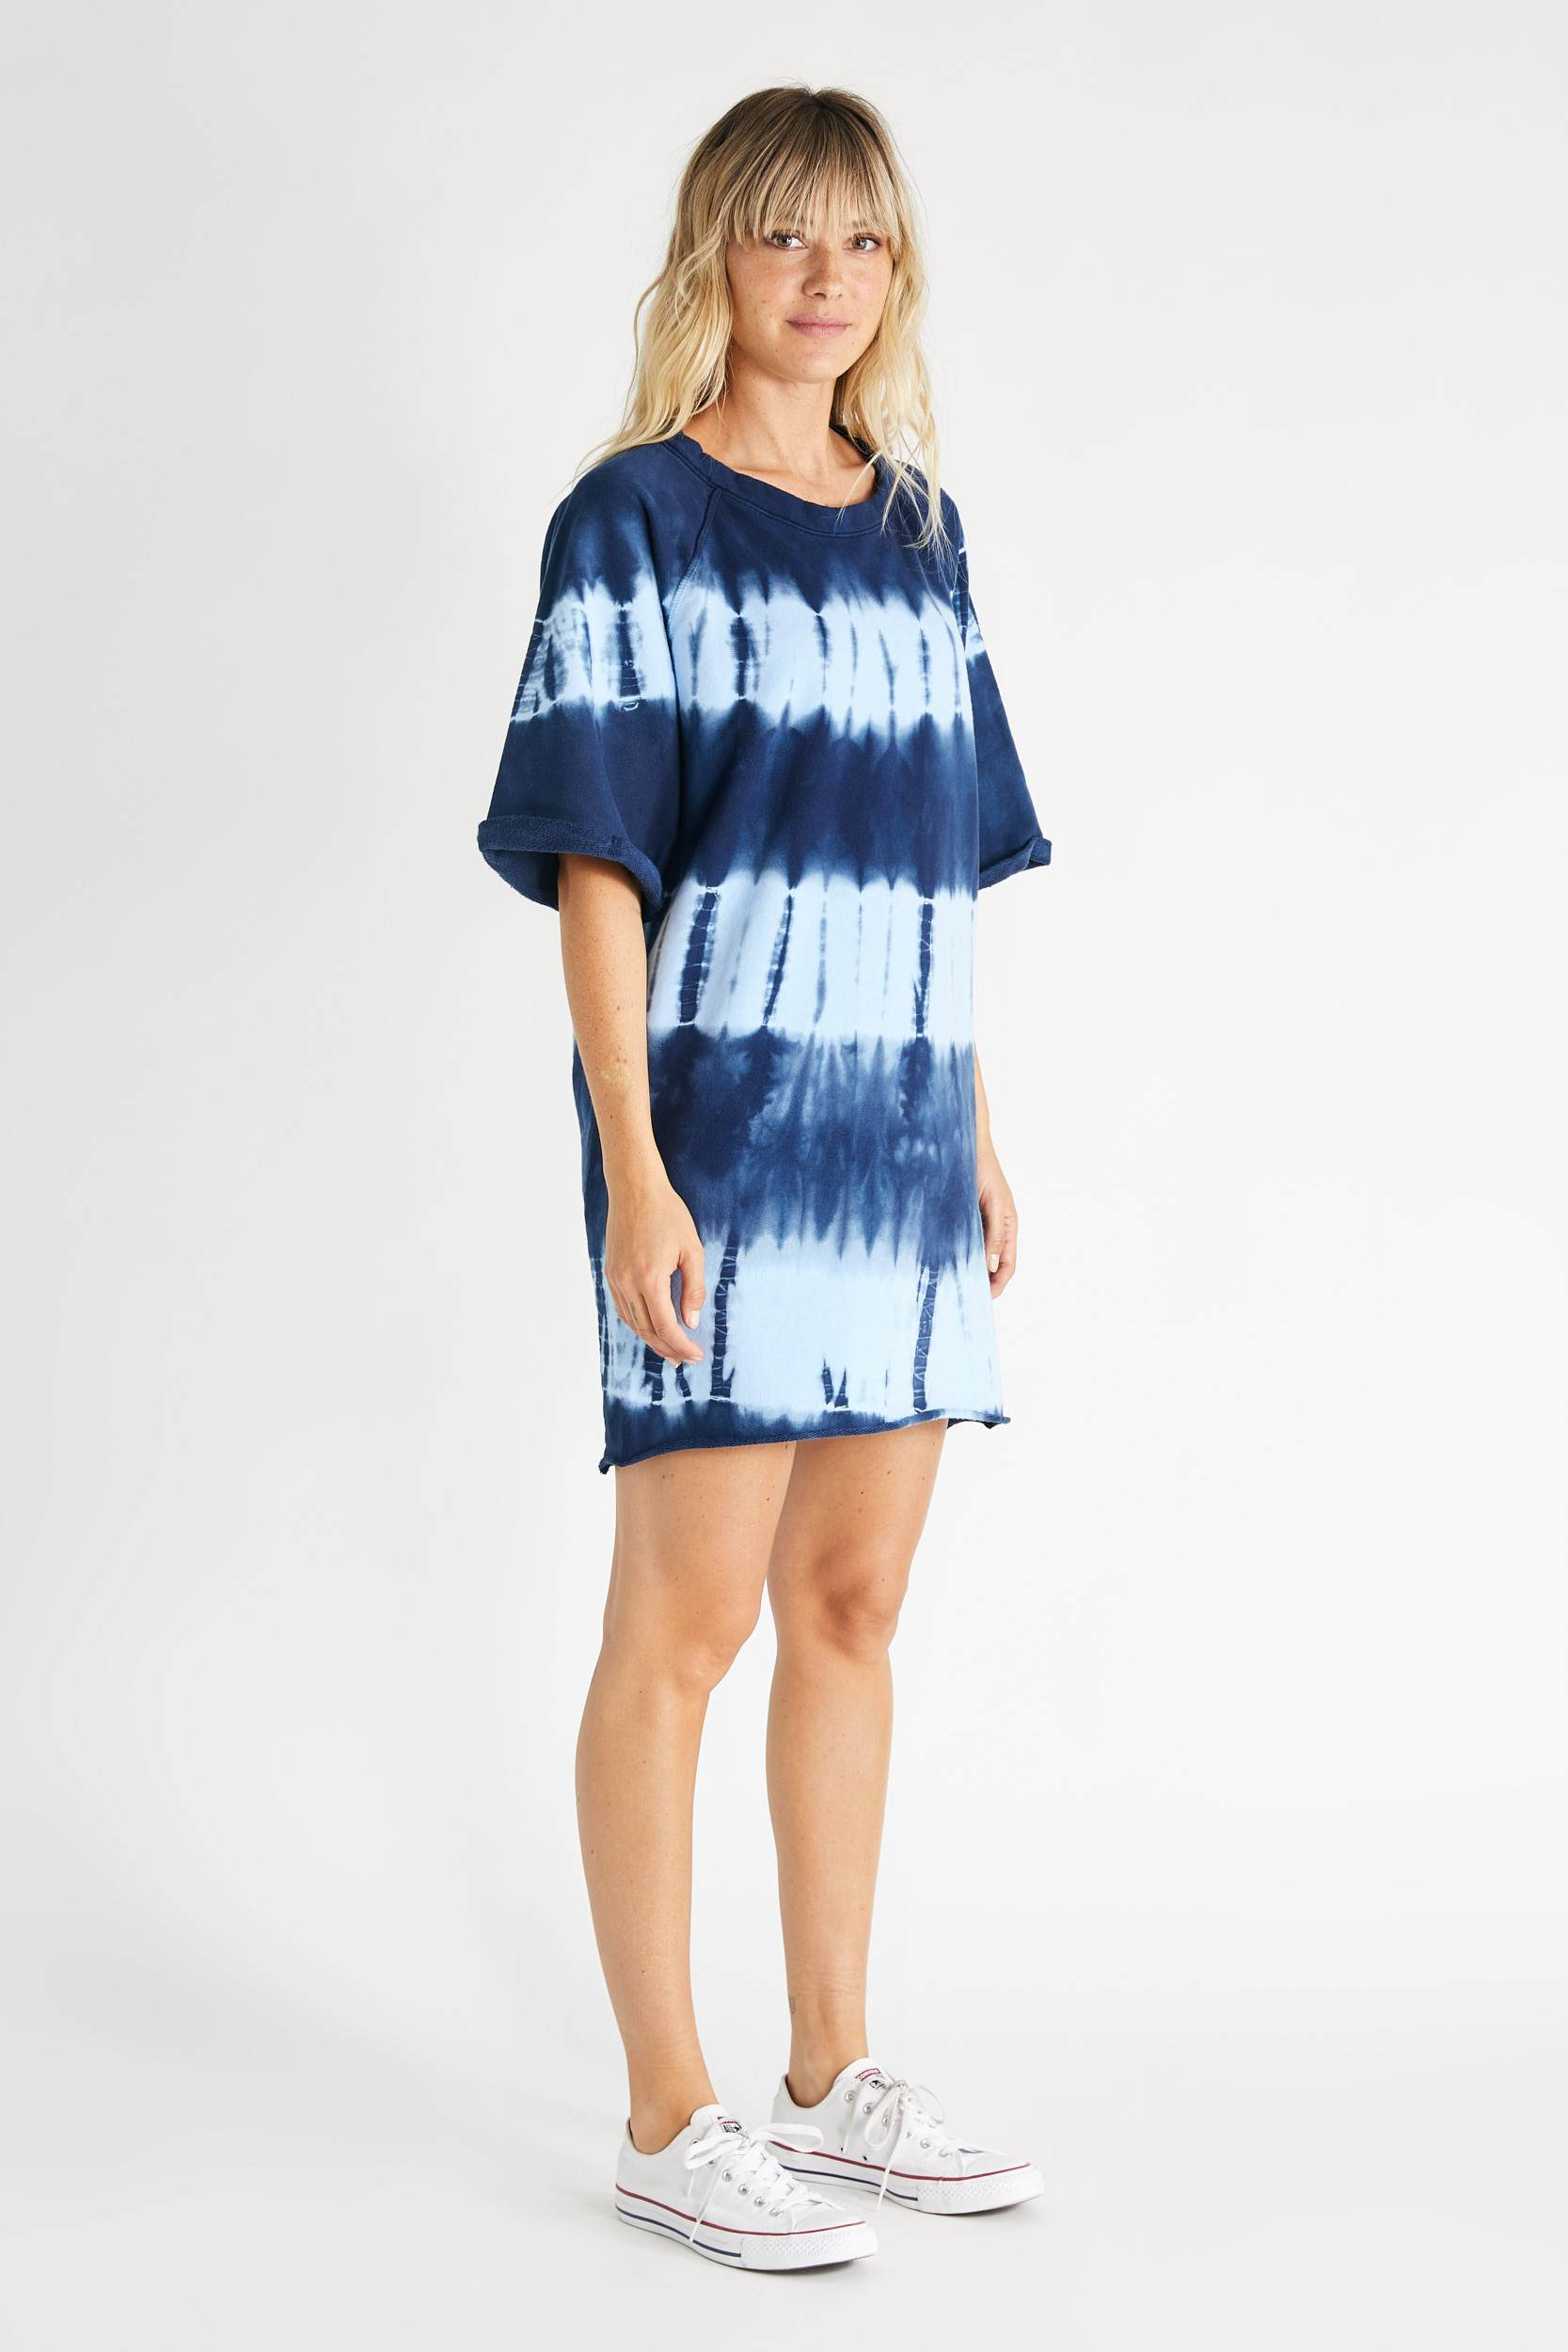 Brooklyn Dress - Indigo Shibori